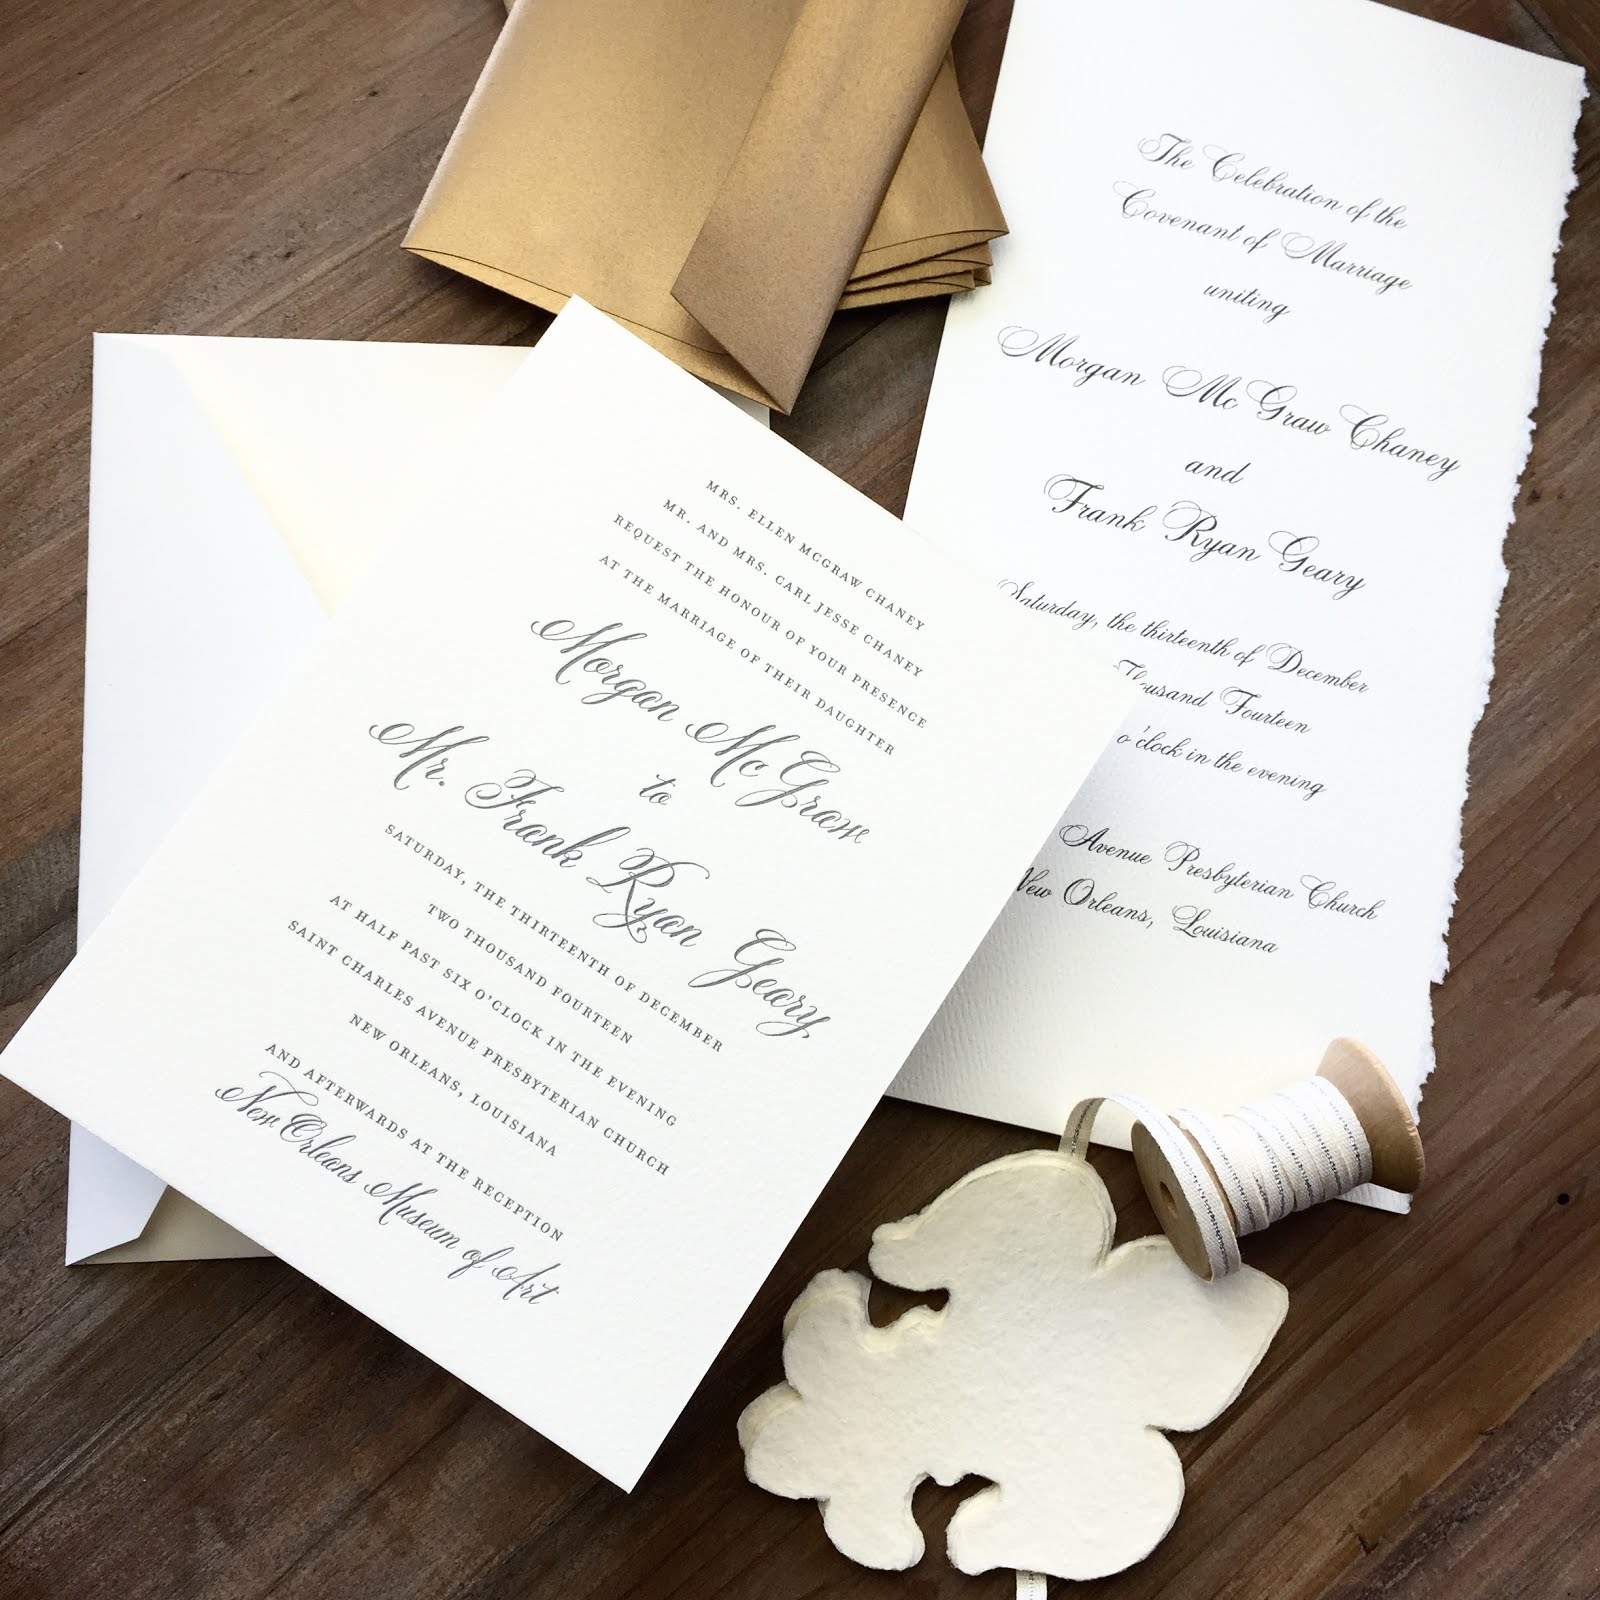 Morgan Chaney And Ryan Geary New Orleans Wedding Invitations And Wedding  Program